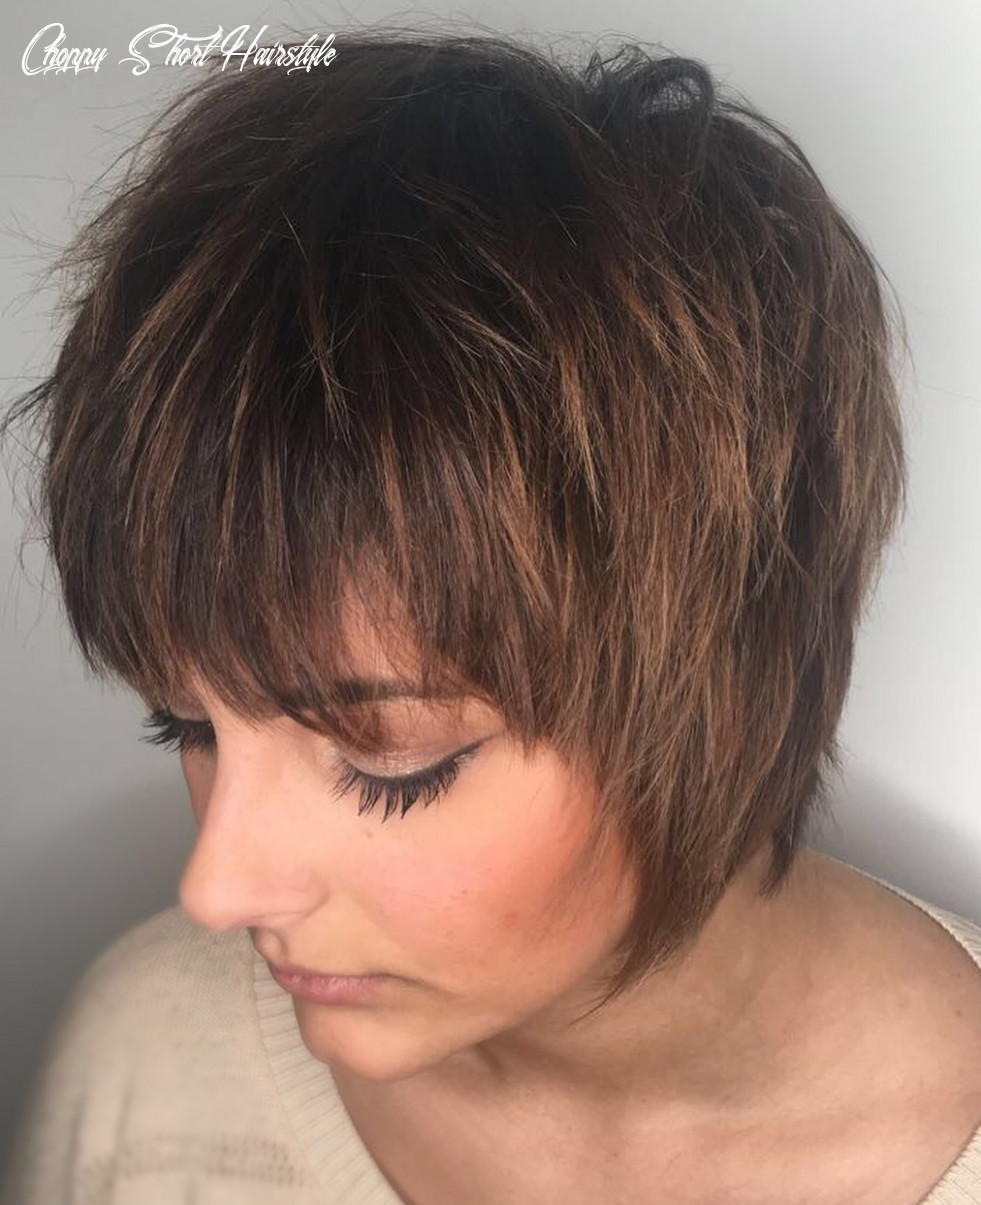 9 short choppy hair ideas for 9 hair adviser choppy short hairstyle